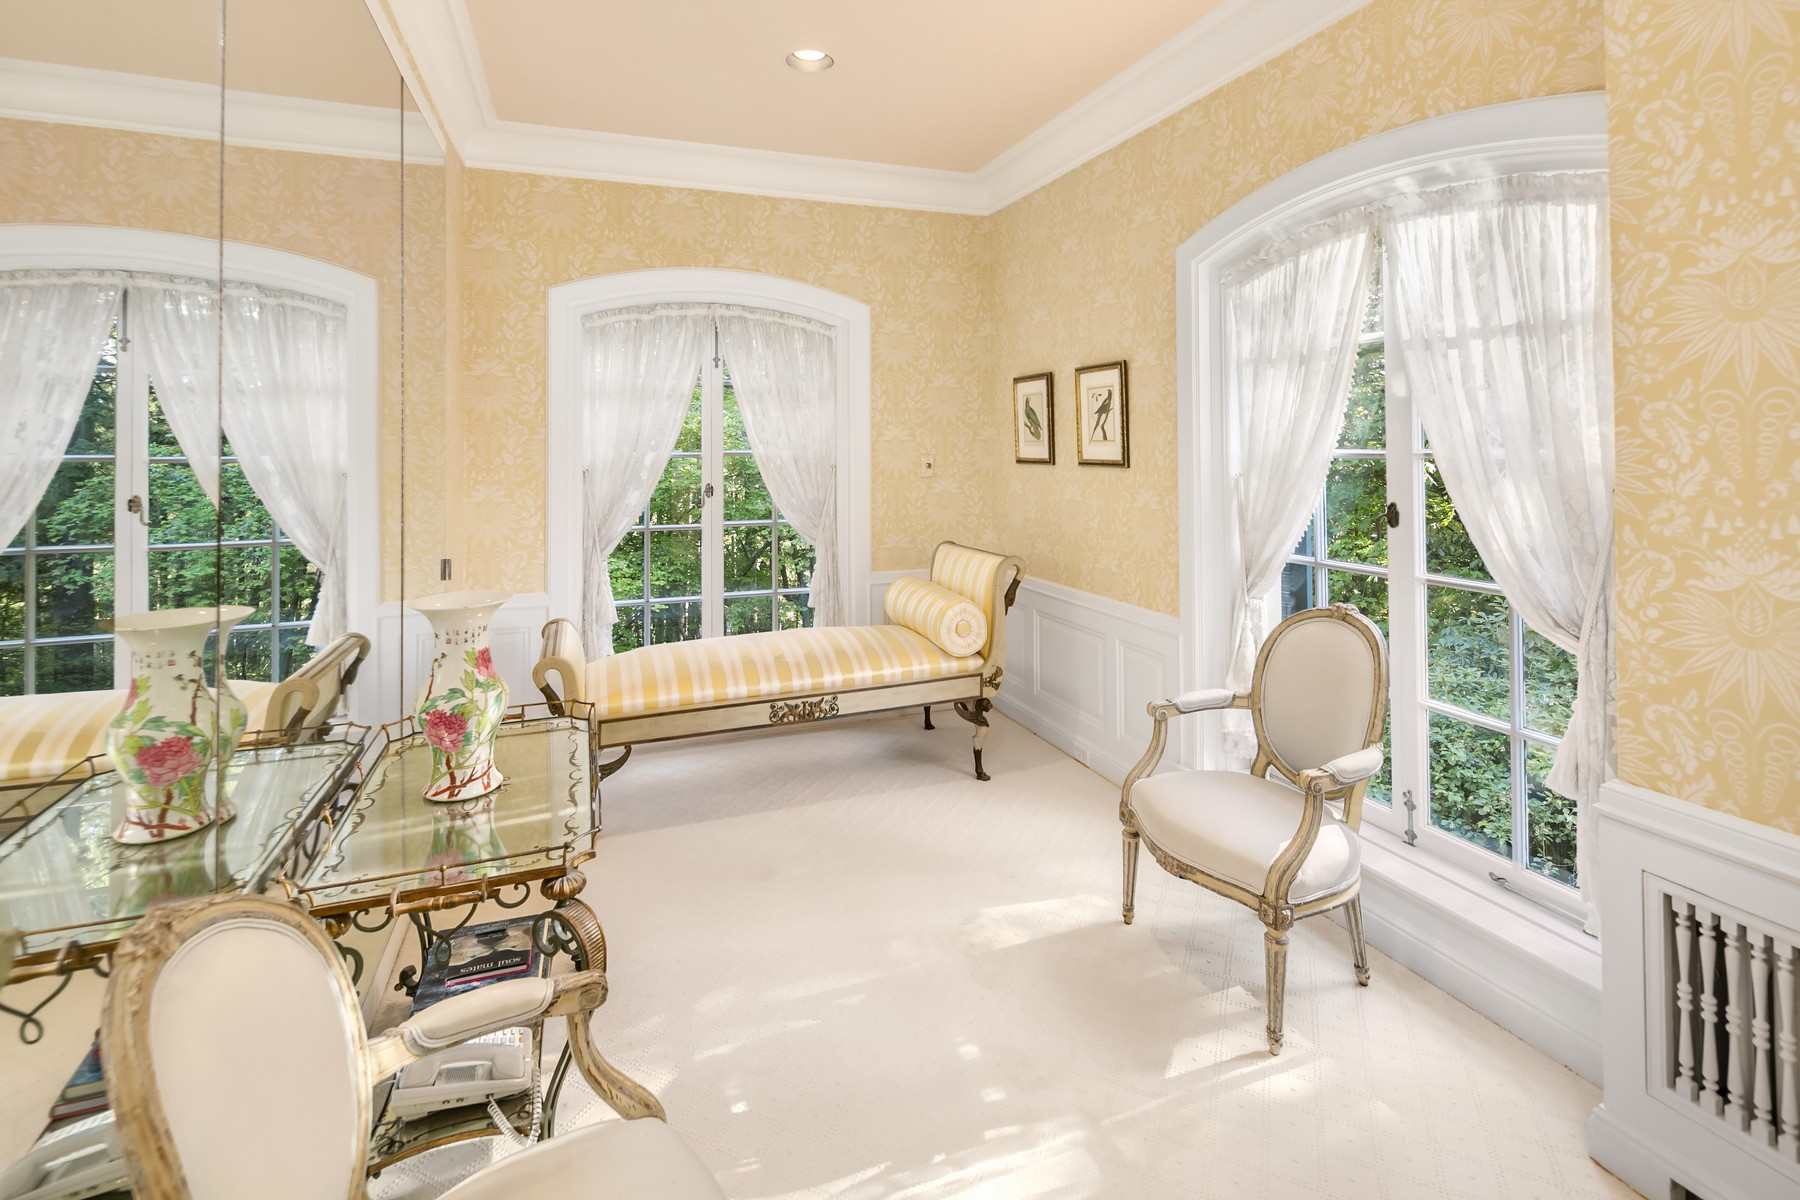 Additional photo for property listing at Chapel Lane Estate 166 Boundary Lane NW 西雅图, 华盛顿州 98177 美国